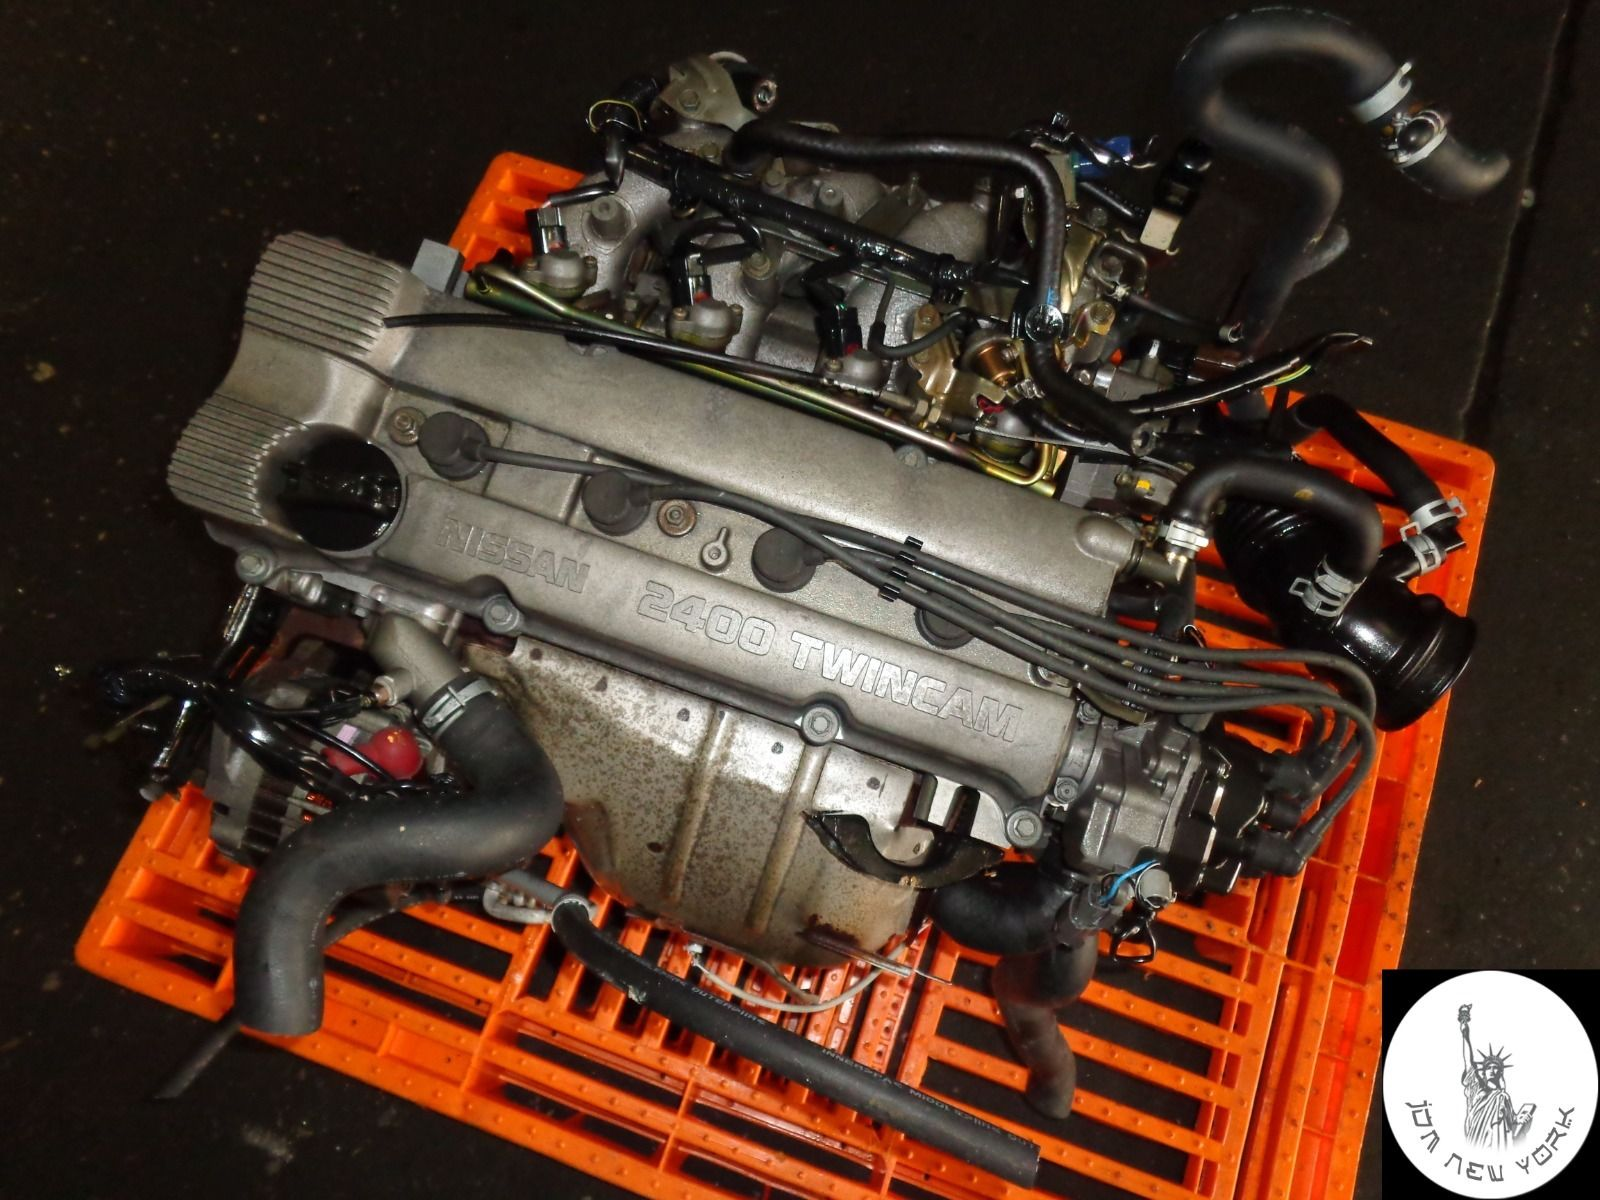 93-01 NISSAN ALTIMA XE SE GLE GXE 2.4L TWIN CAM FWD ENGINE ...